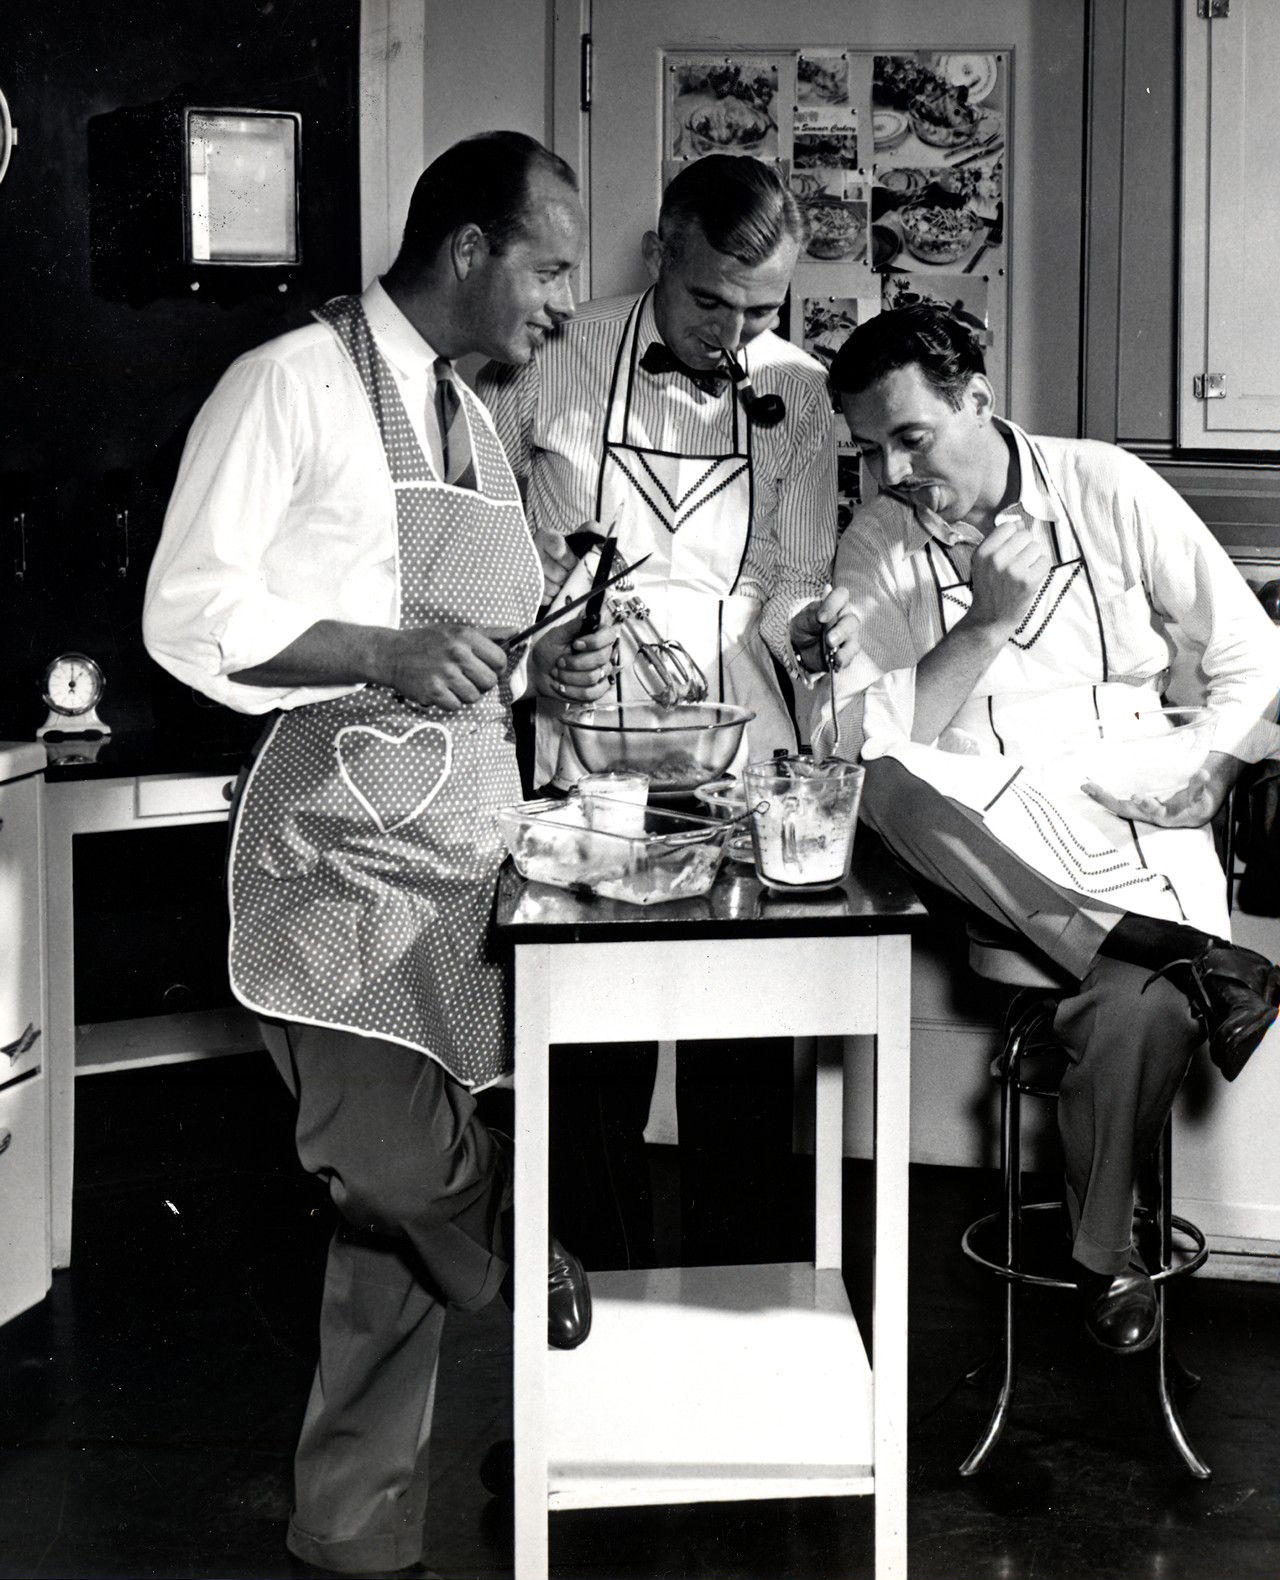 R.F. Barlow, G.J. Mackey, and E.E. Shankin training in the Test Kitchen. Photography by Ayres Stevens, 1946. Courtesy of Corning Incorporated, Department of Archives and Record Management